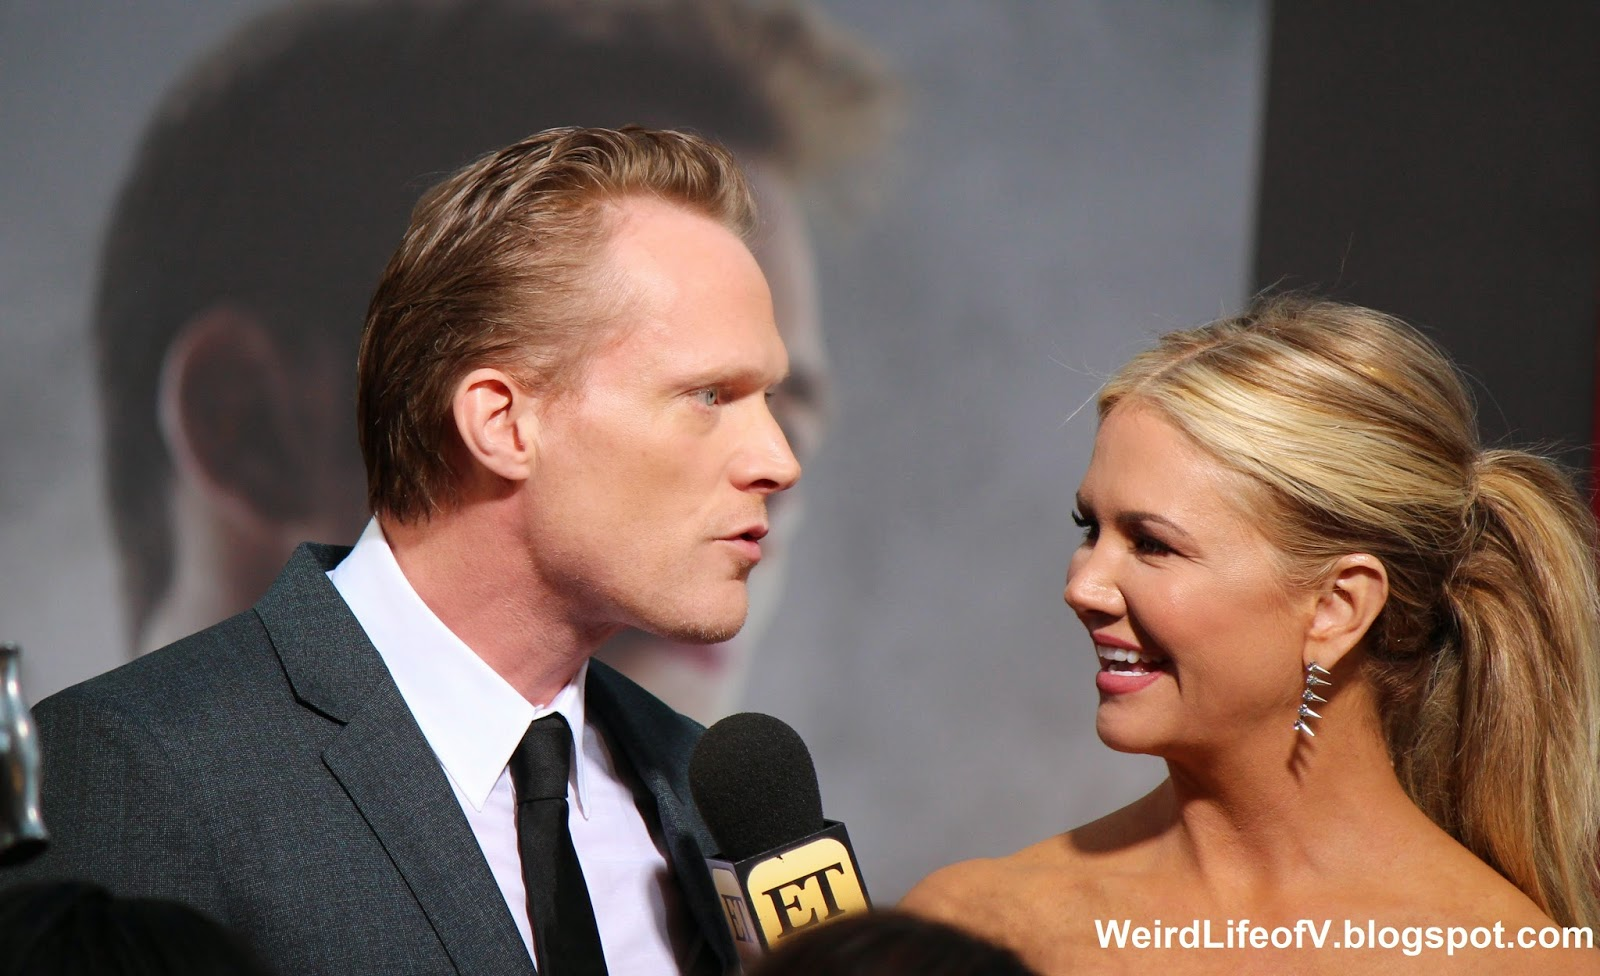 Paul Bettany being interviewed by Nancy O'Dell